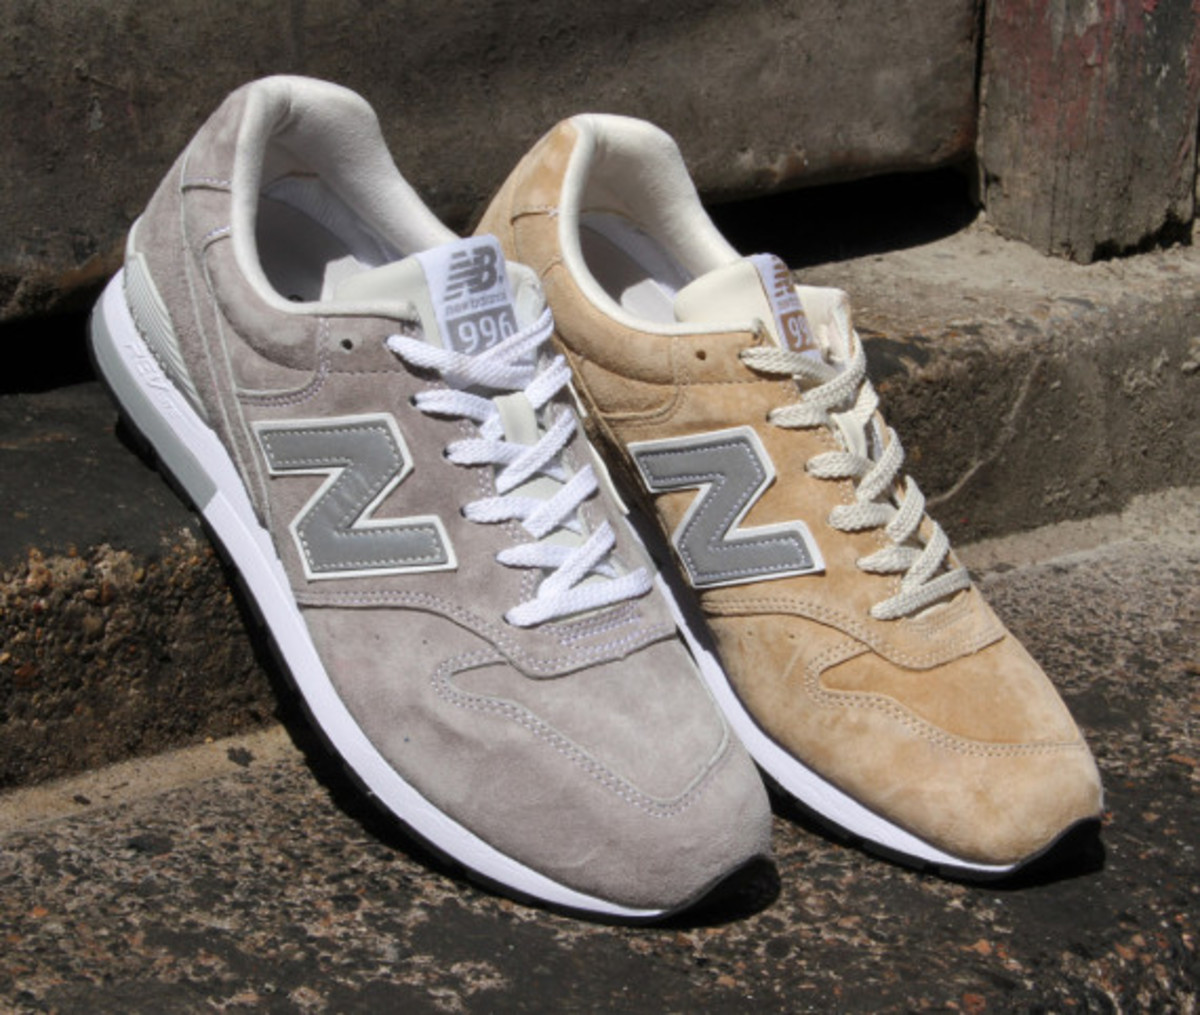 New Balance MRL996 - August 2014 Releases - 0